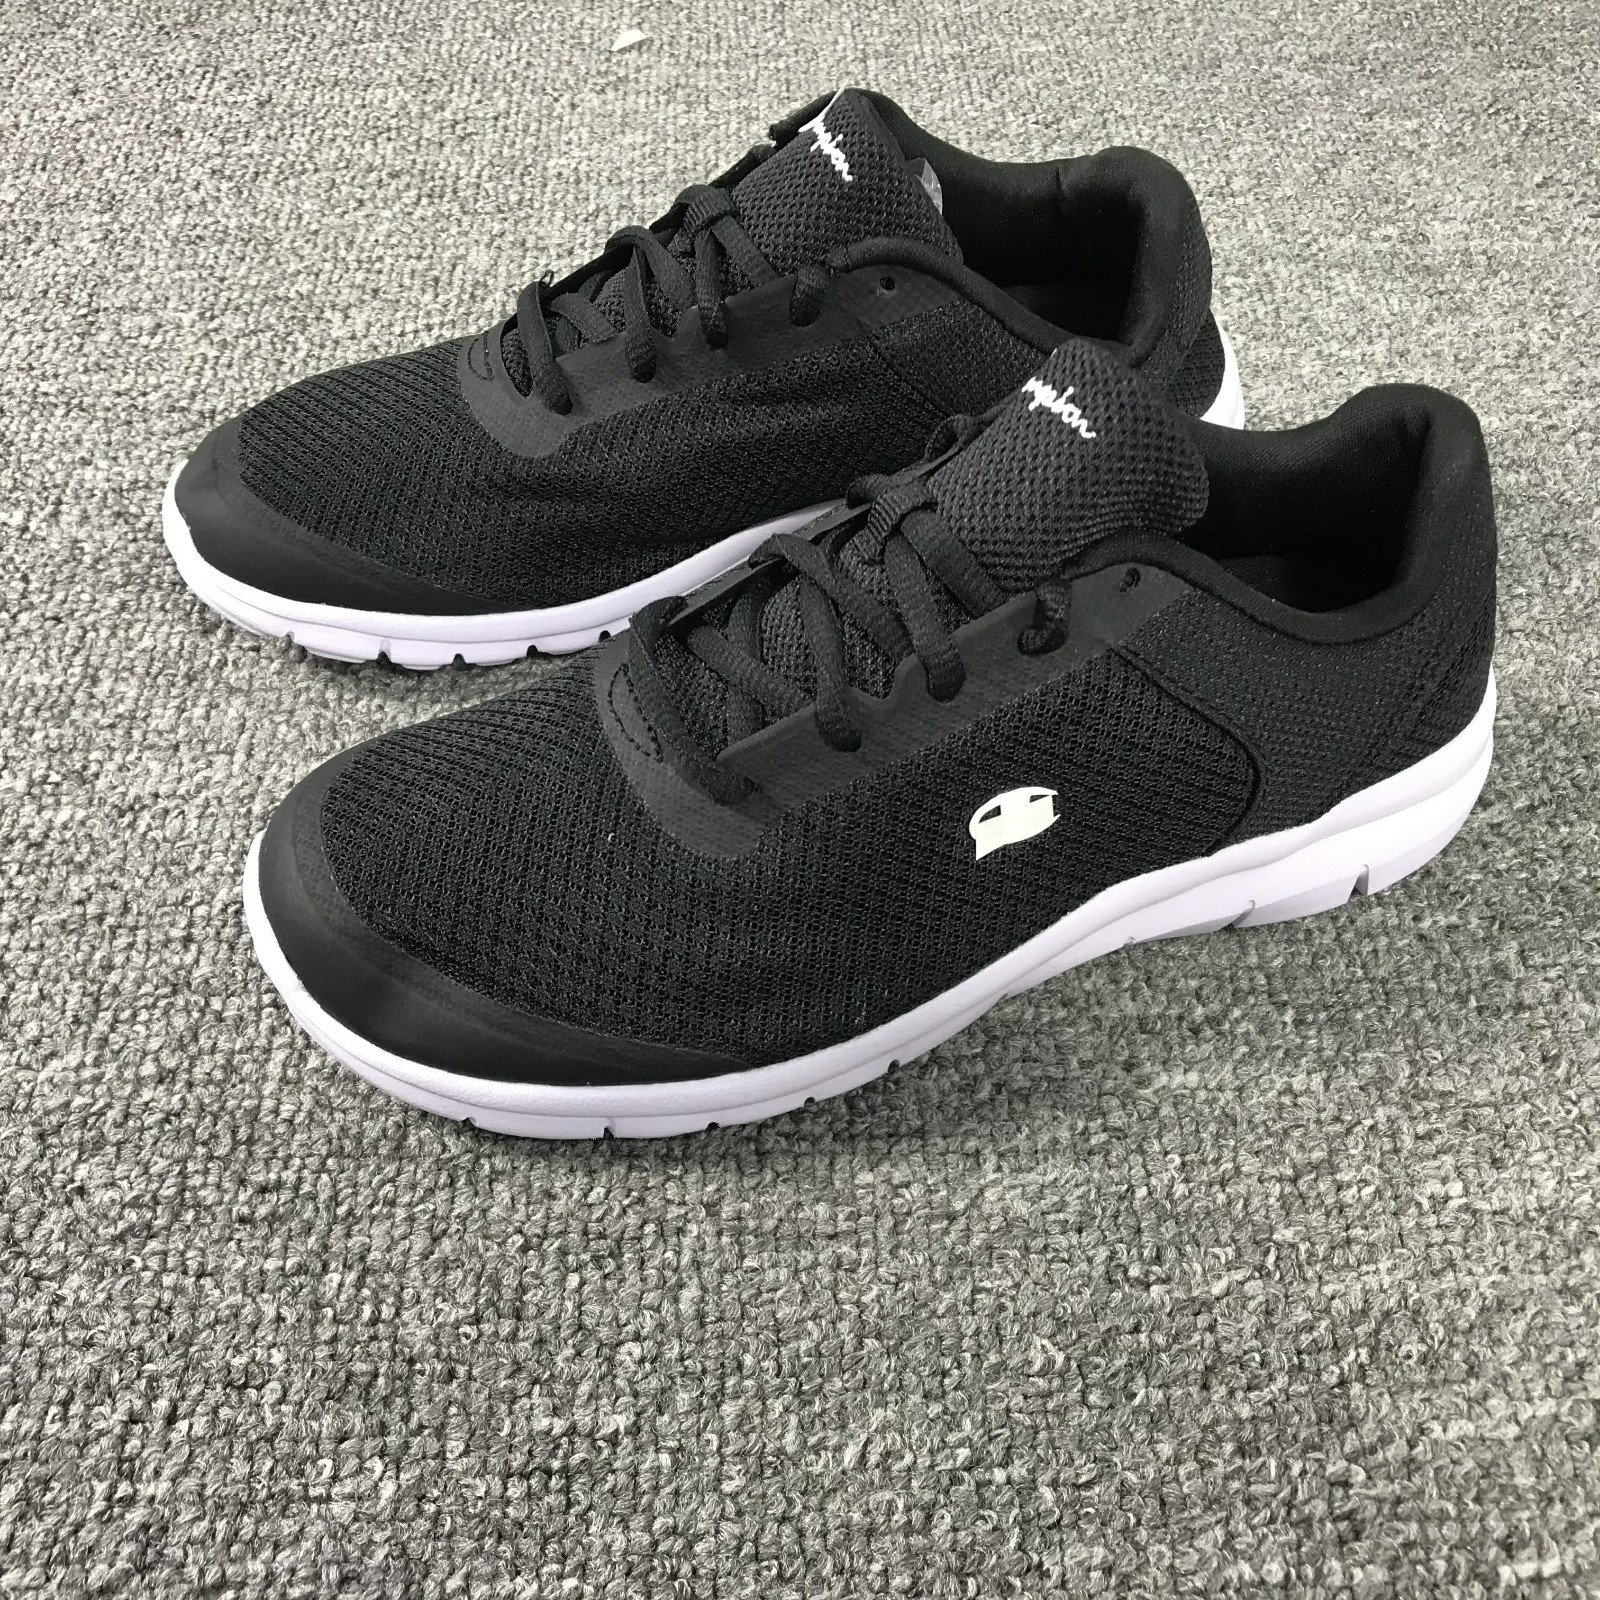 Special exports of U.S. crown sports shoes men's slow shock light running shoes women's shoes travel shoes casual shoes tide